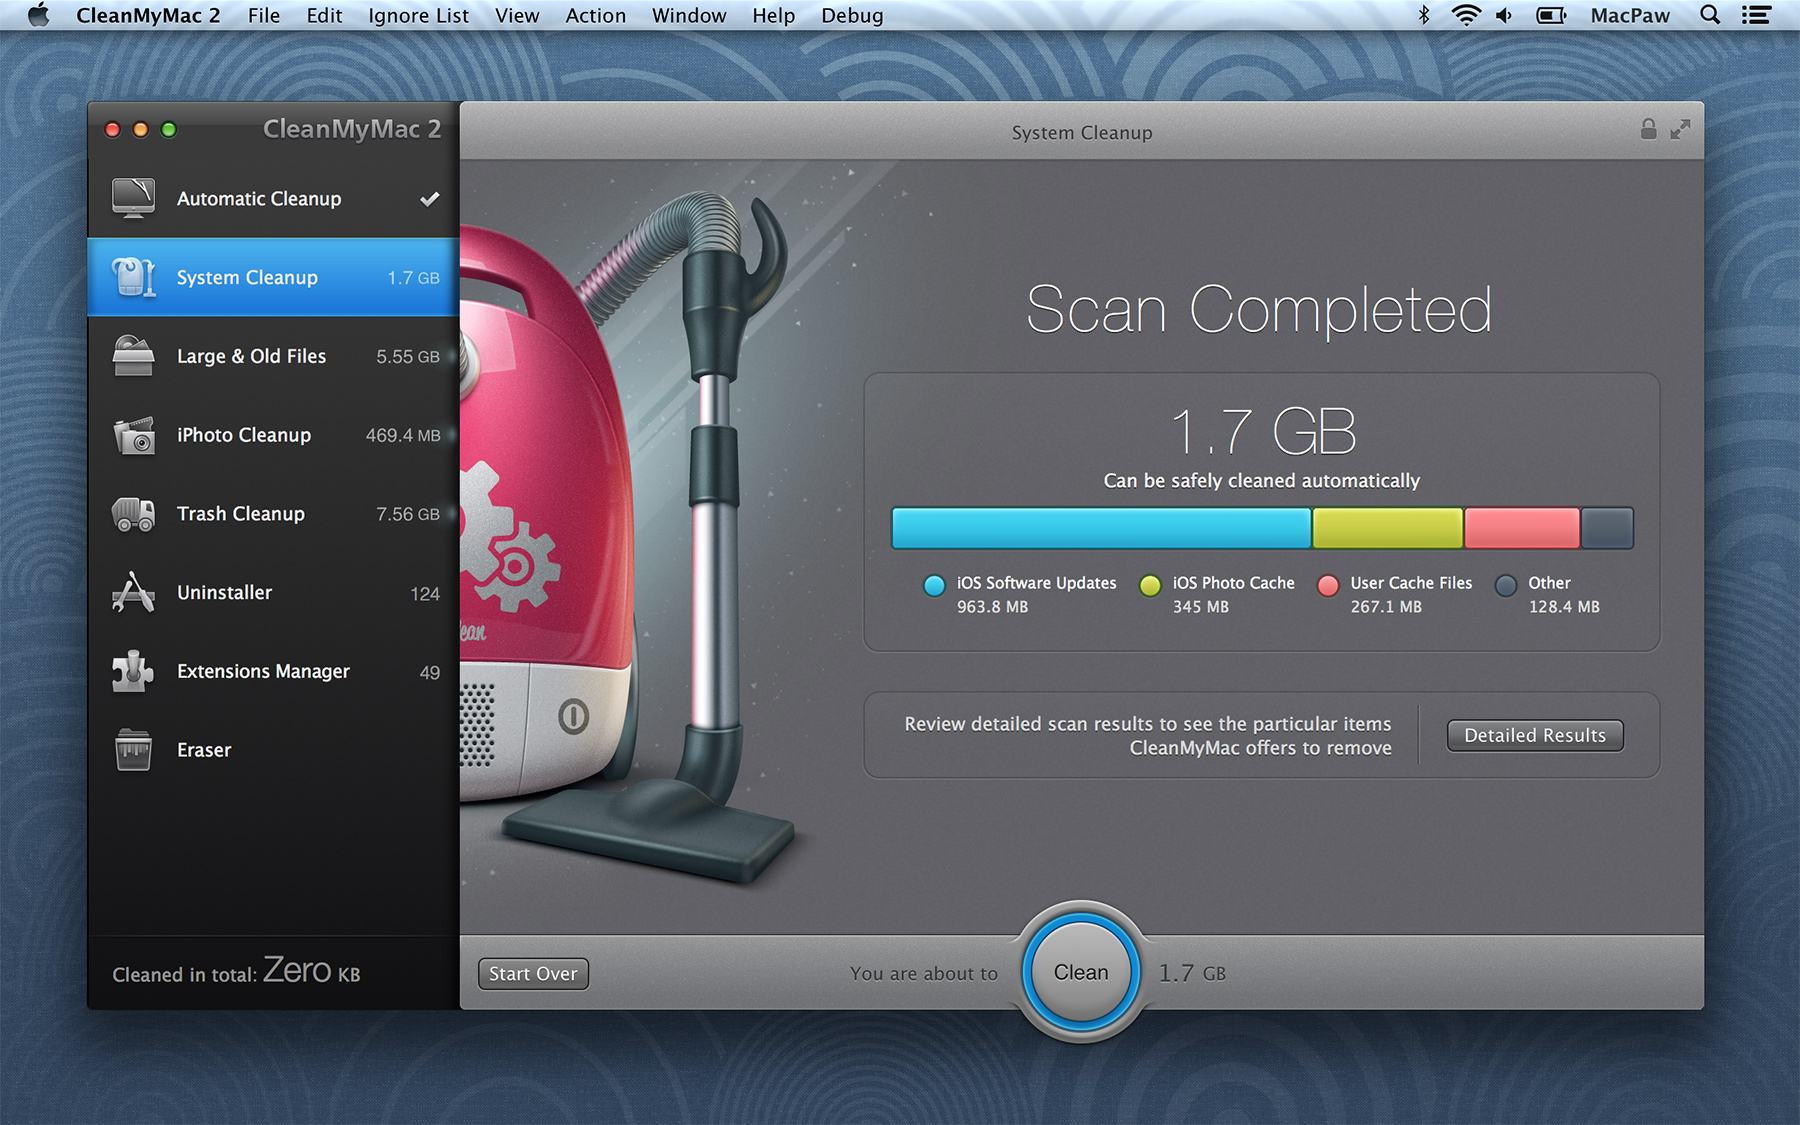 CleanMyMac 2